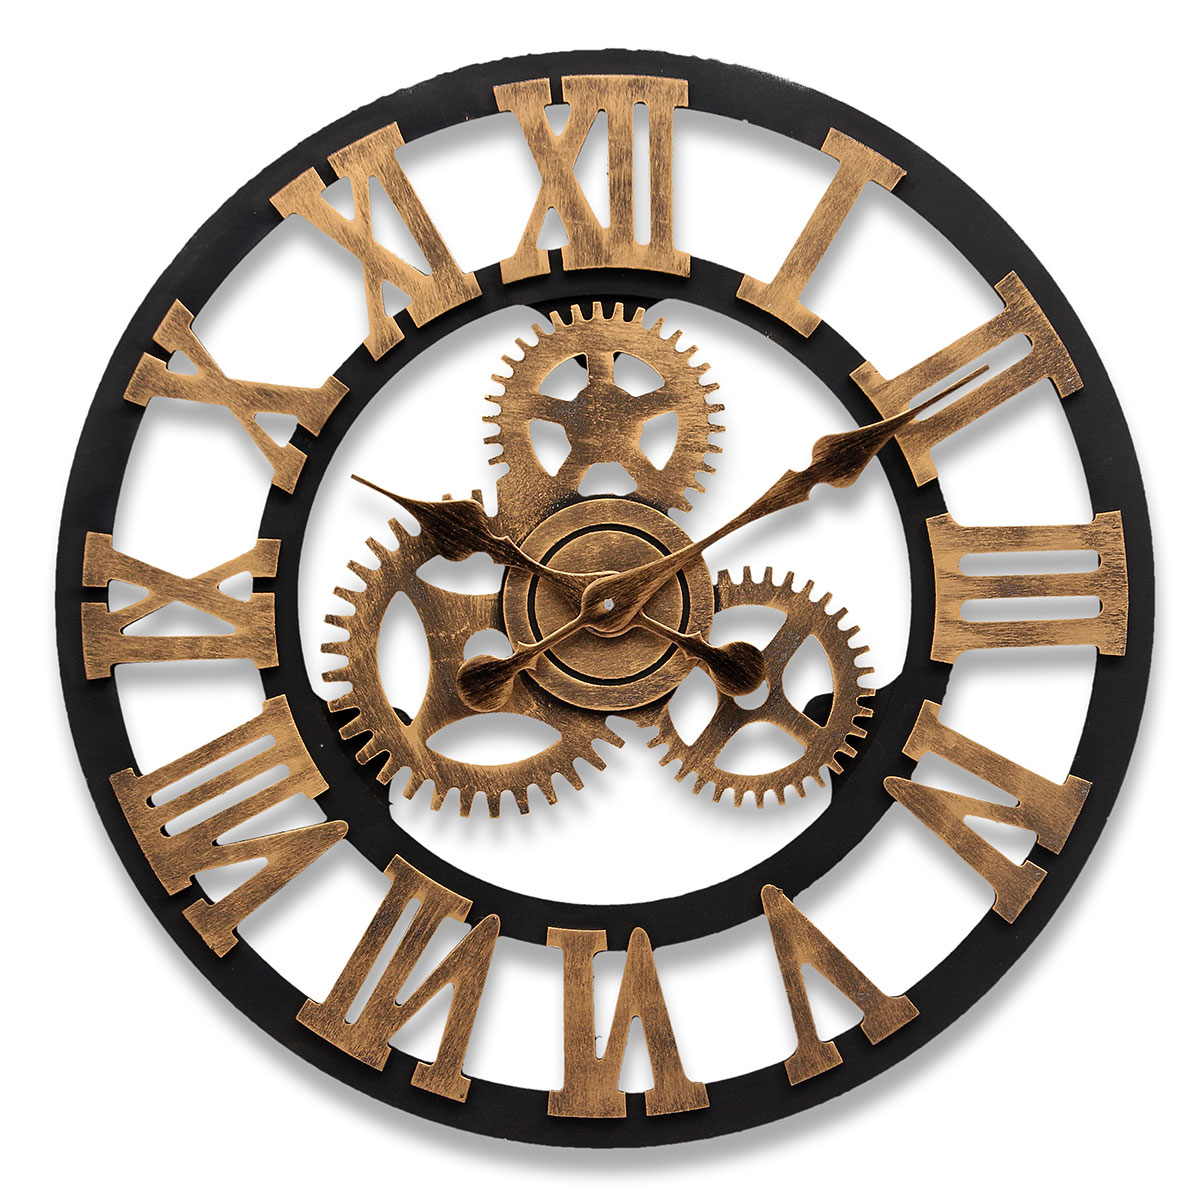 45cm 3d horloge murale quartz antique gear bois luxury handmade crochet or achat vente. Black Bedroom Furniture Sets. Home Design Ideas